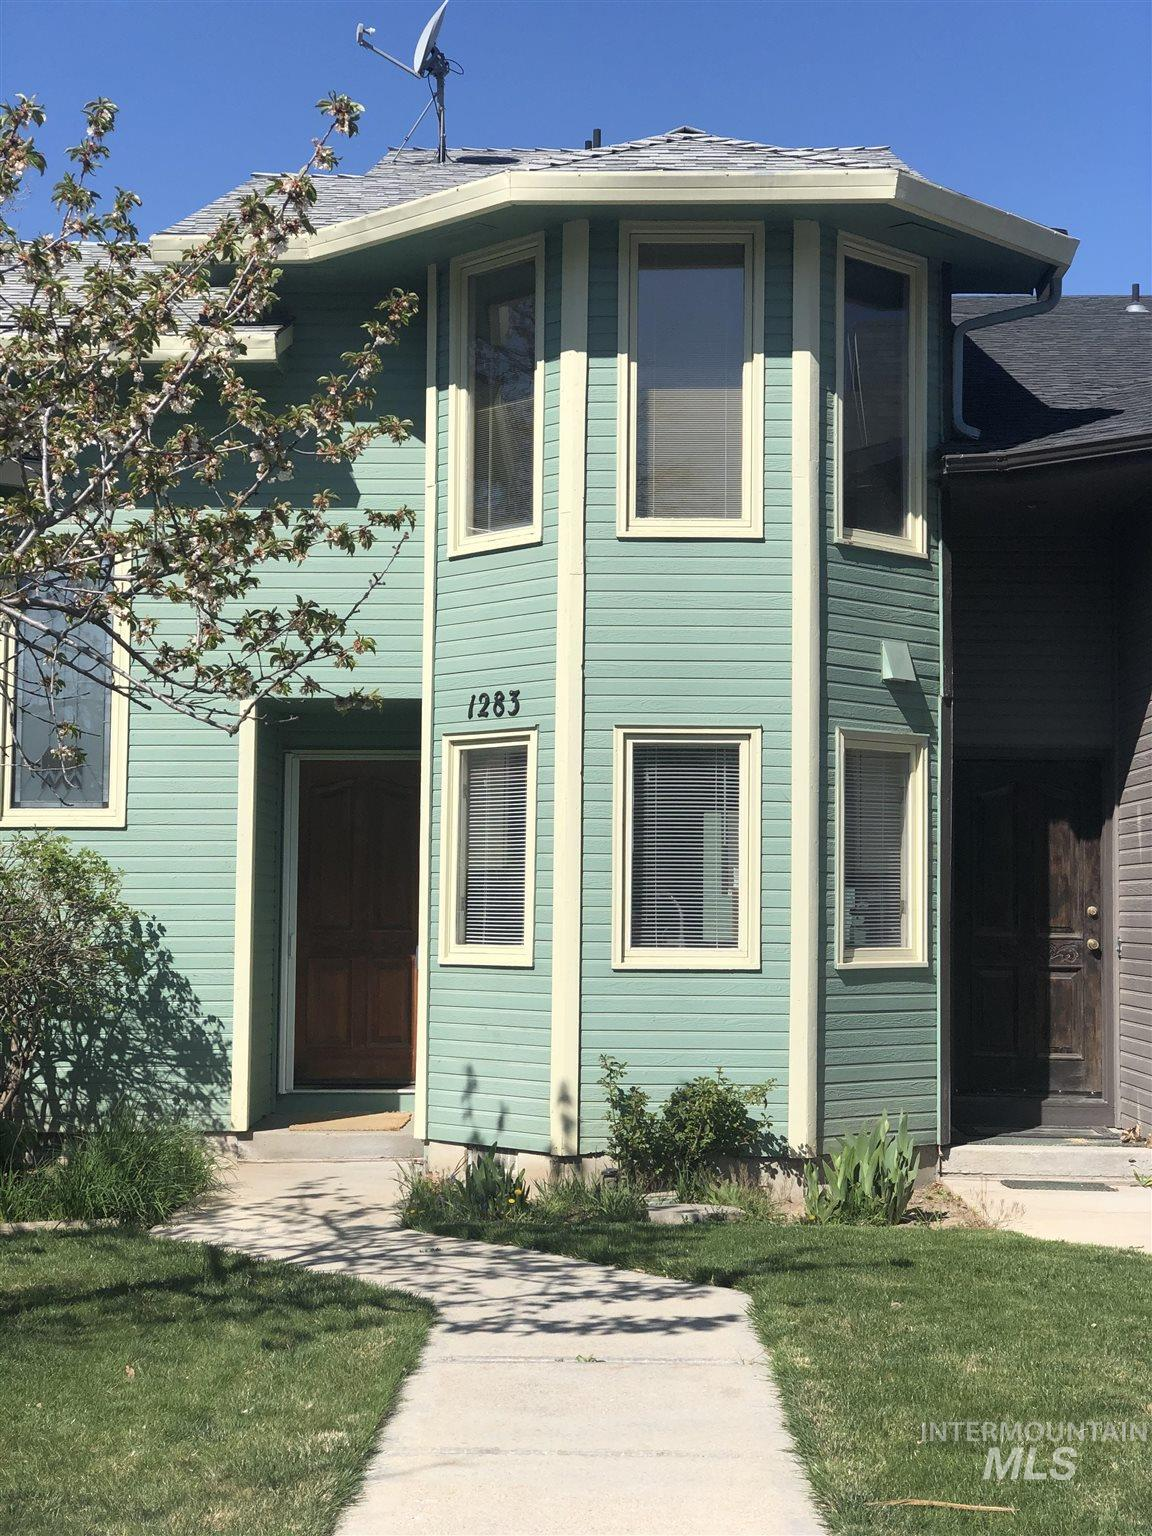 1283 S Division Ave Property Photo - Boise, ID real estate listing